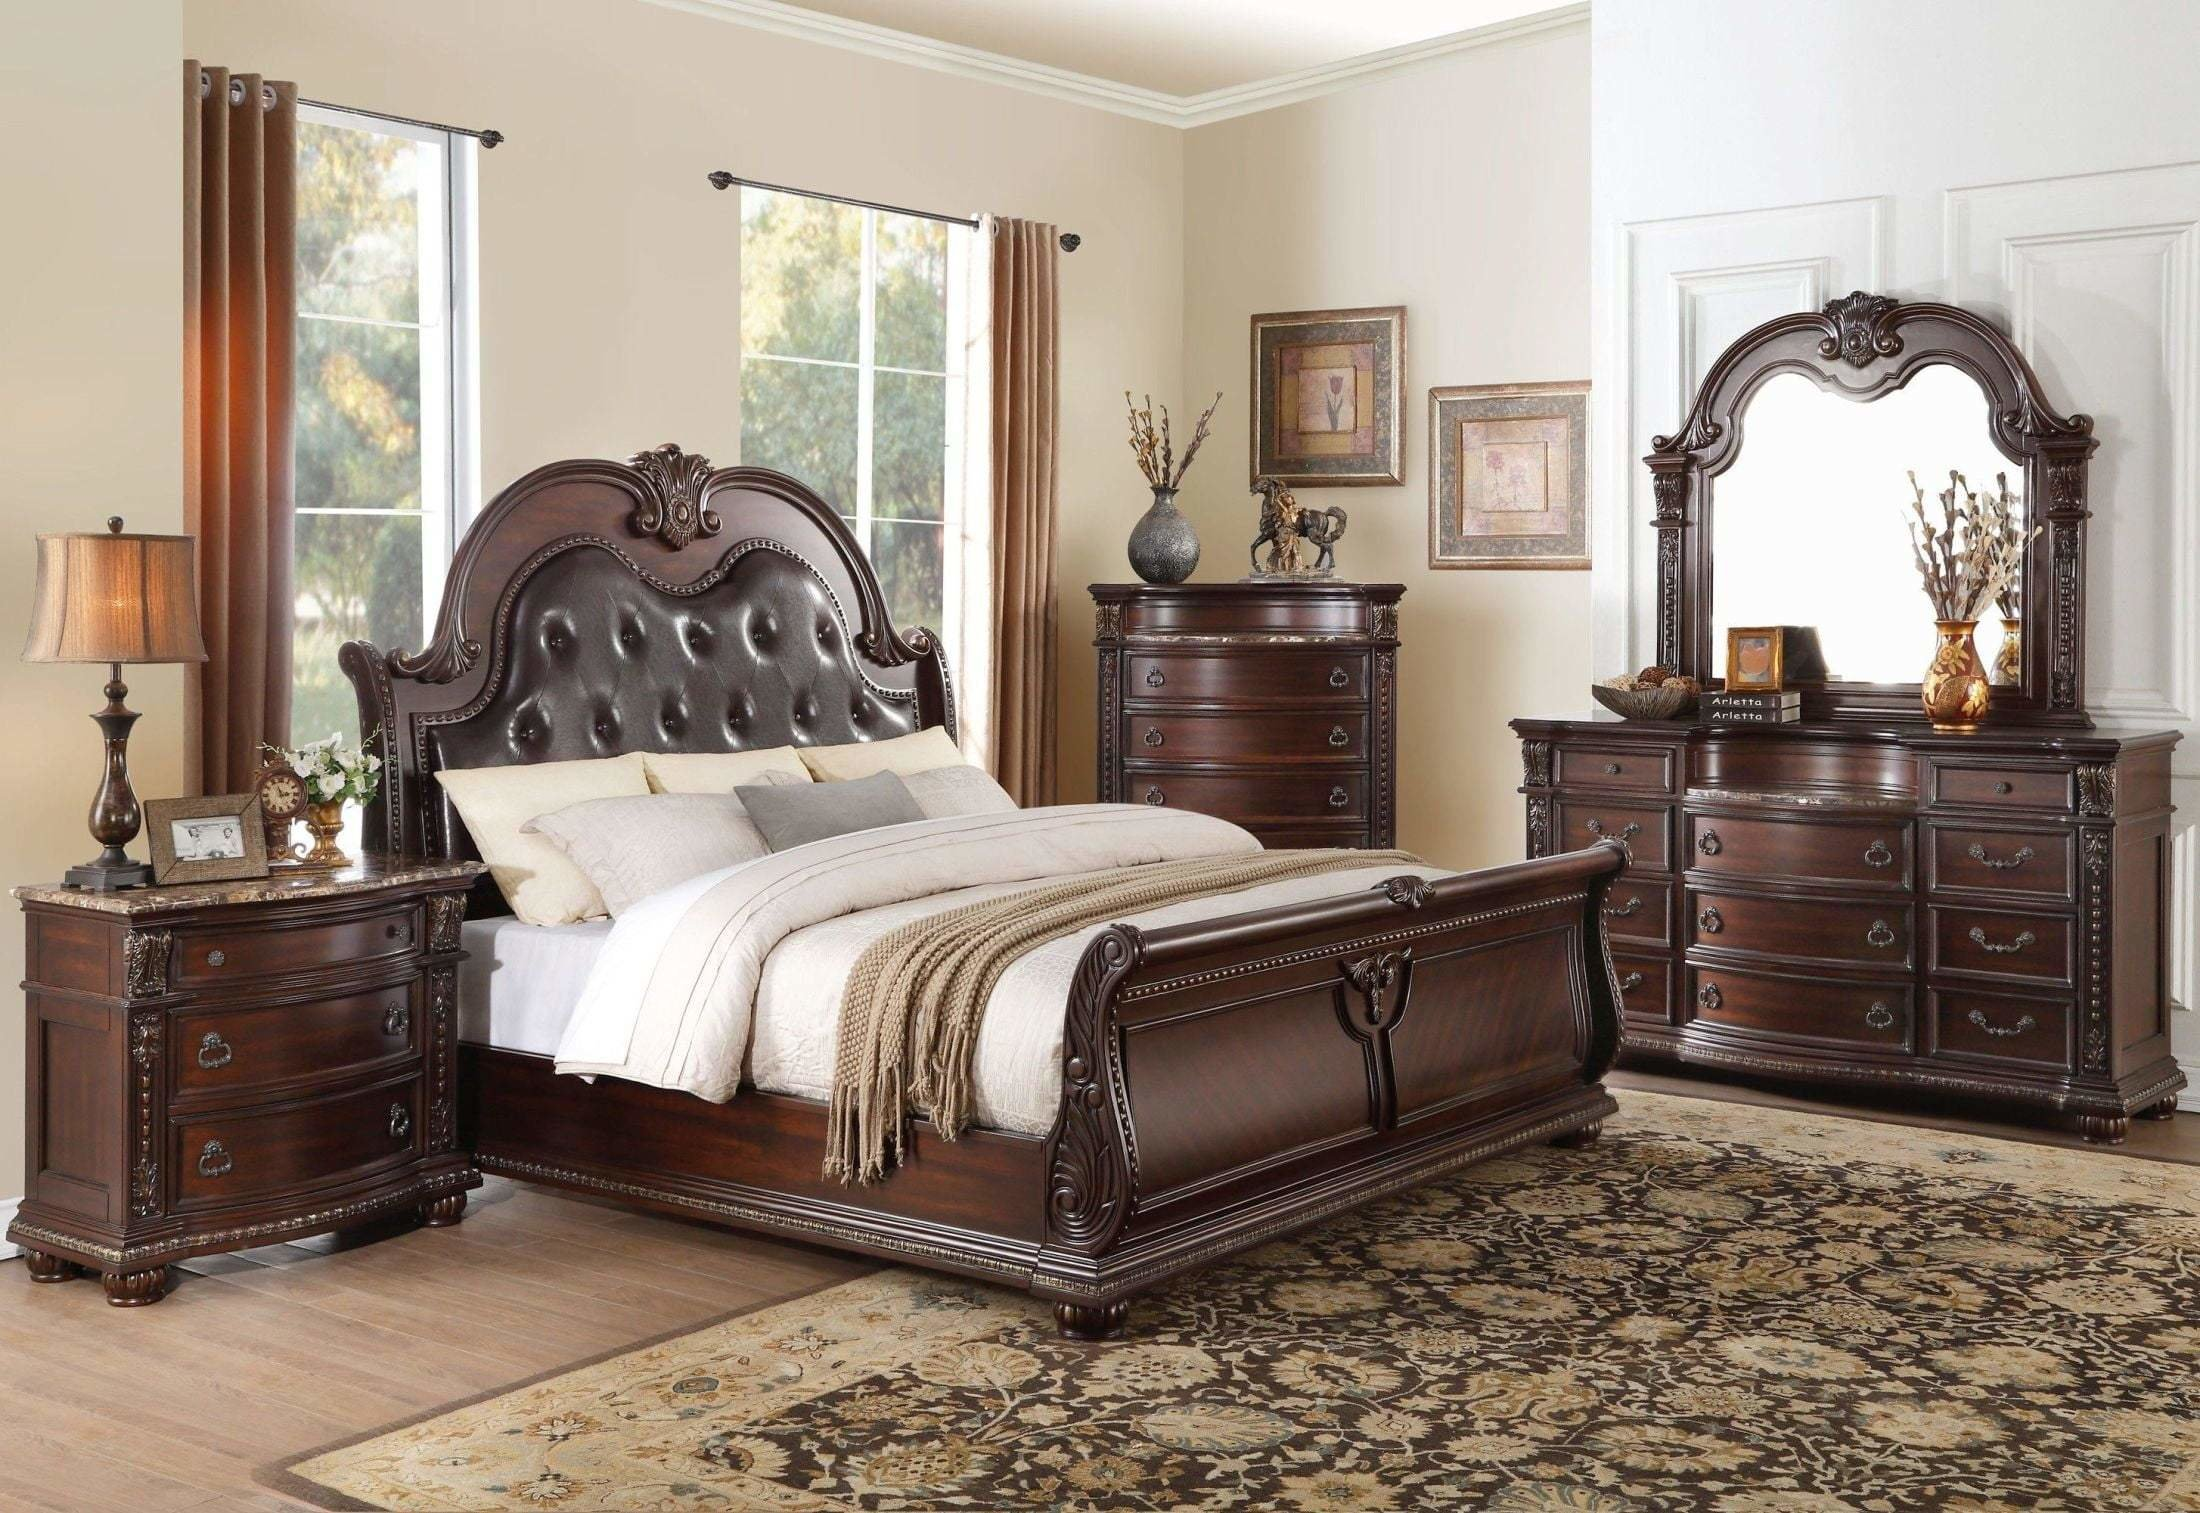 Best Homelegance Cavalier Dark Cherry Sleigh Bedroom Set Cavalier Collection 4 Reviews With Pictures